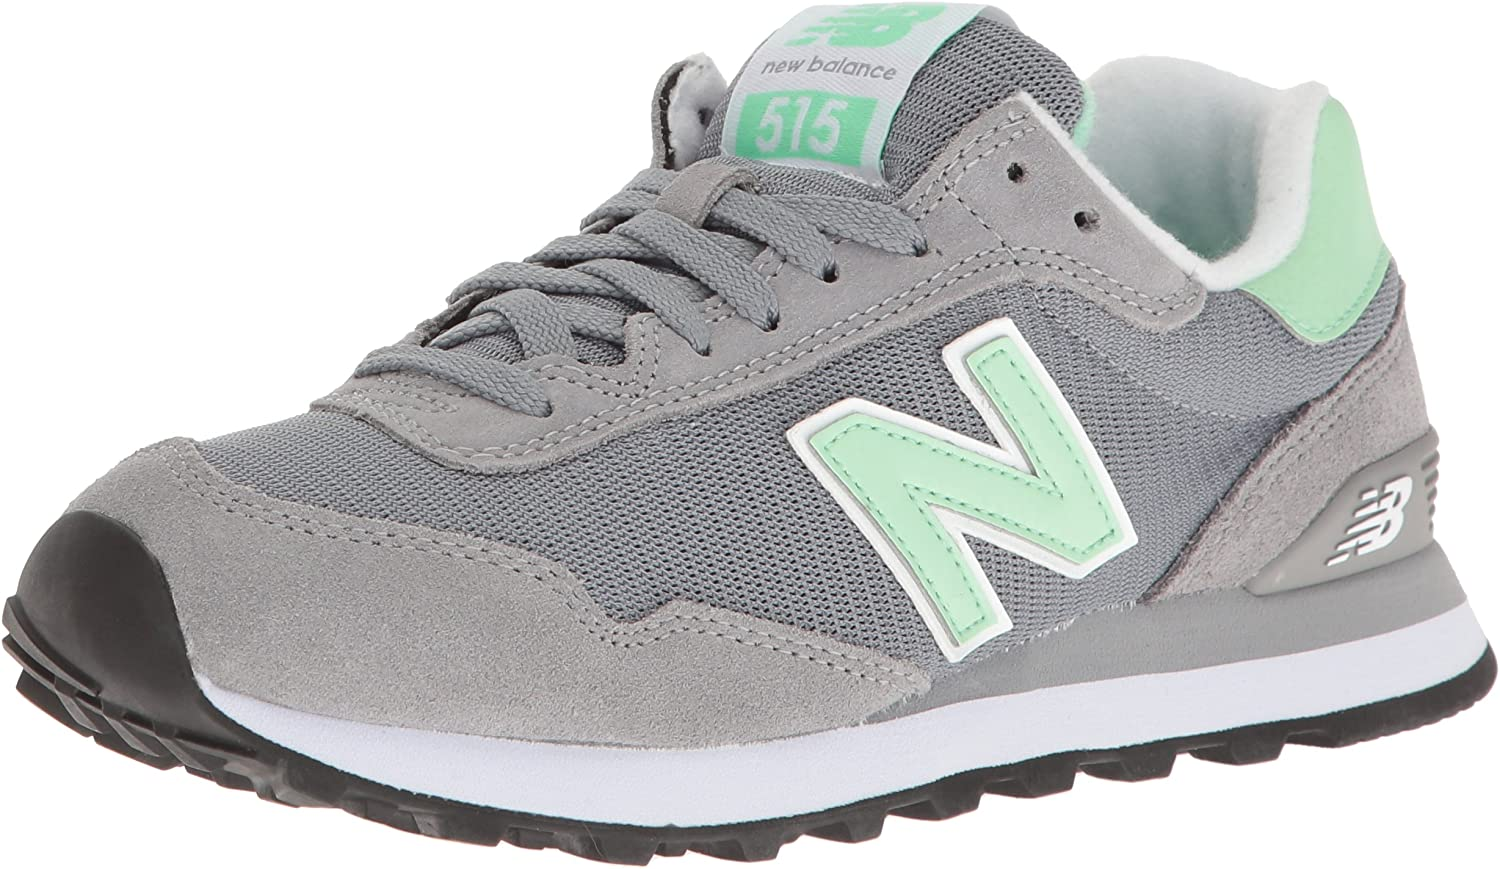 New Balance Womens Wl515 Sneakers